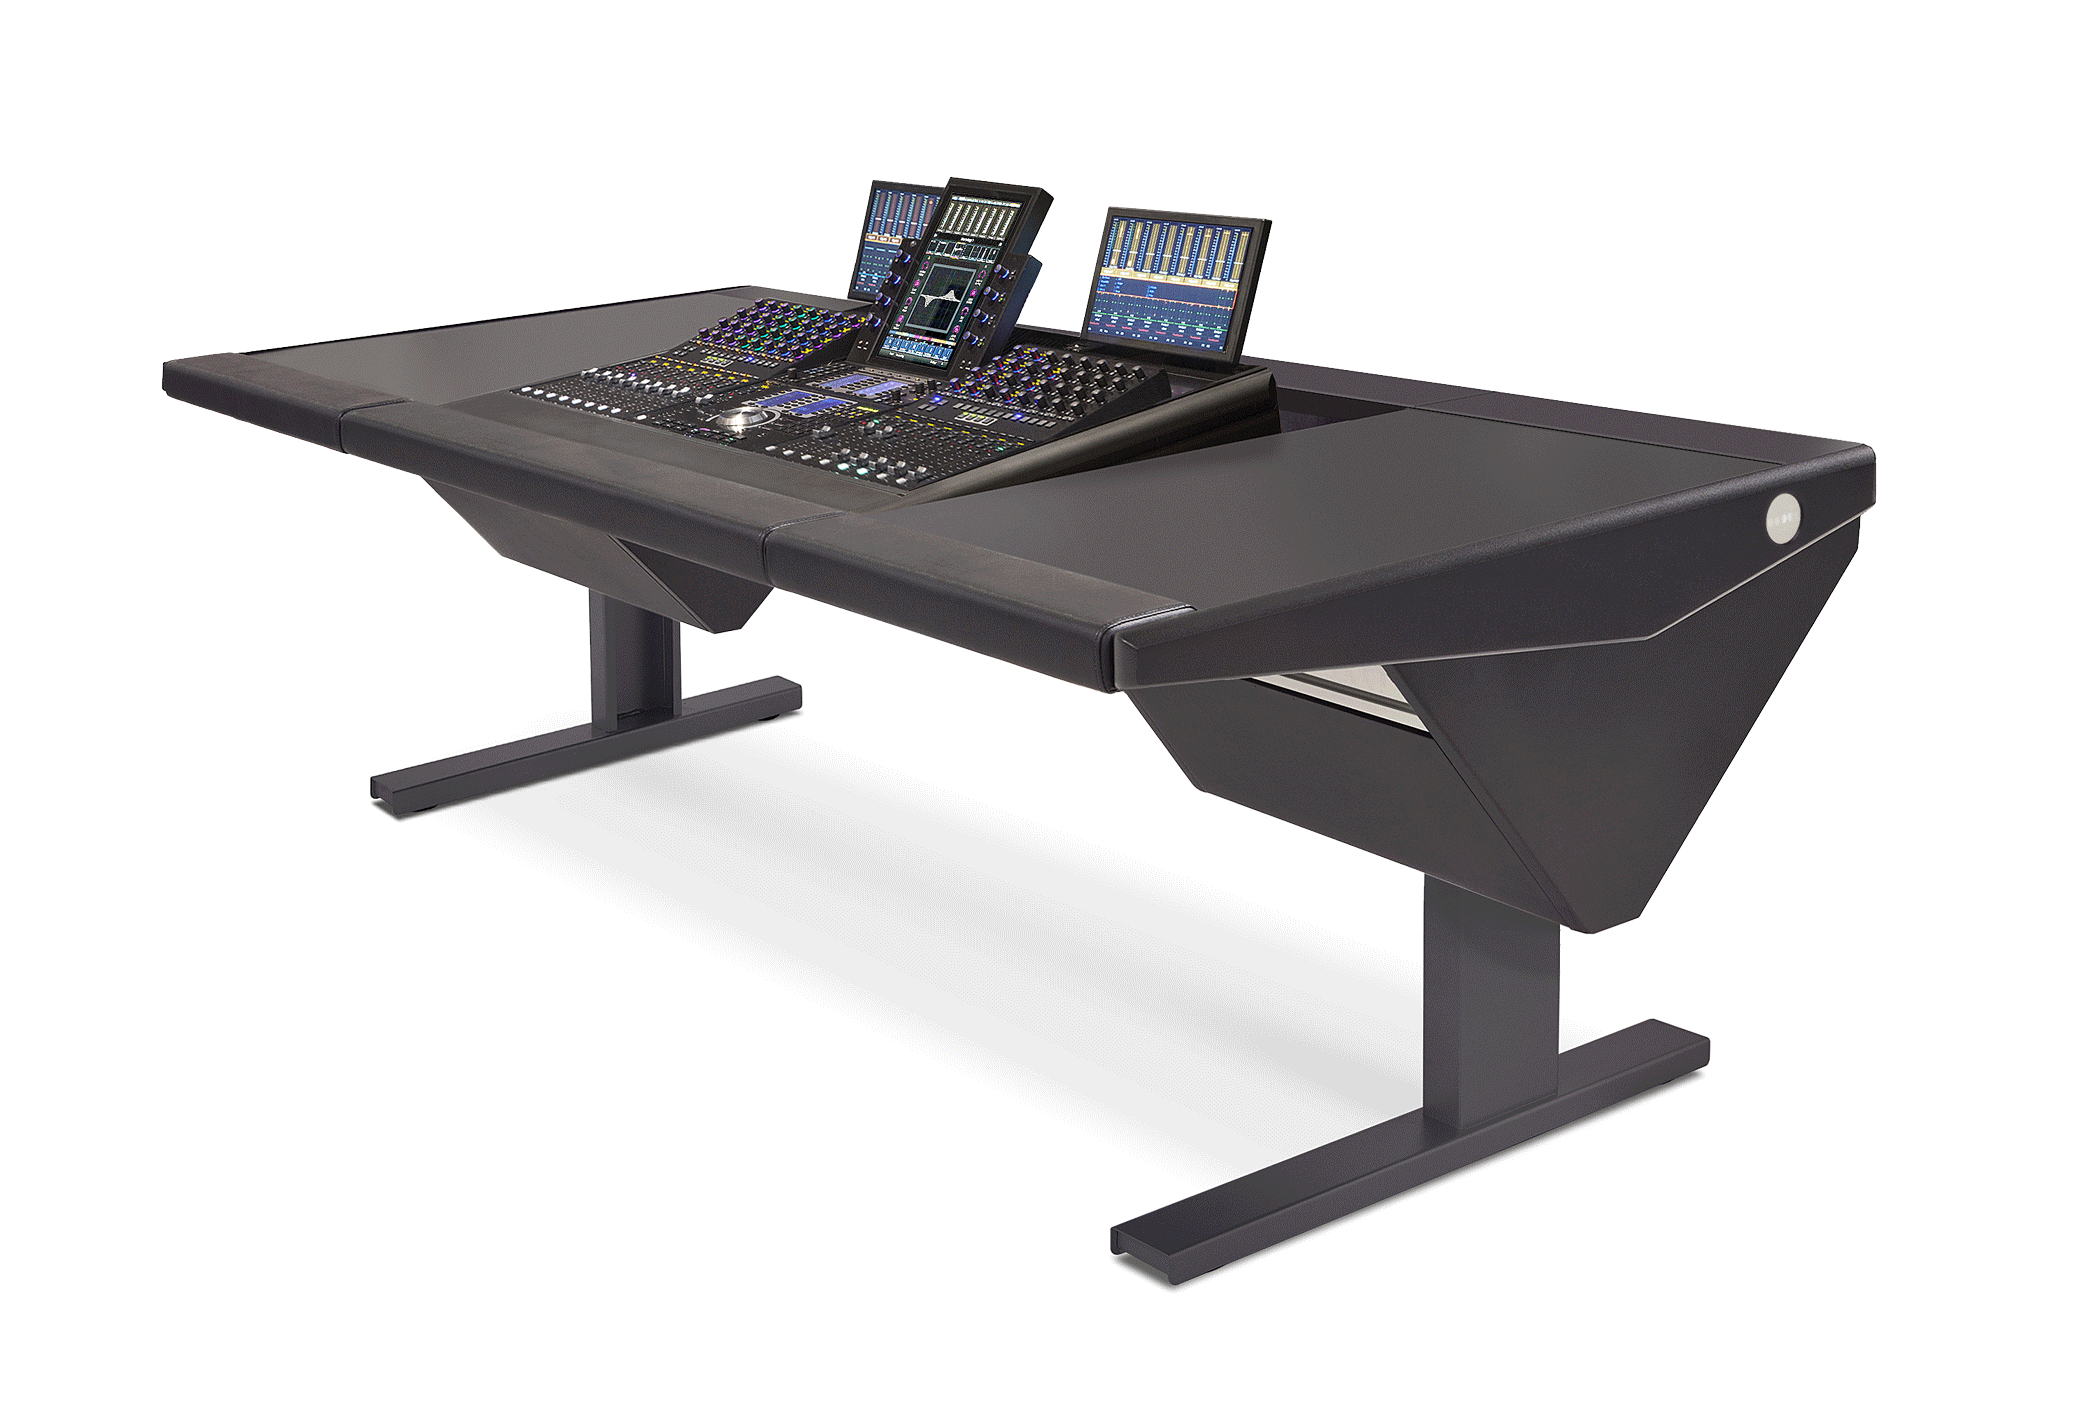 S4 - 3 Foot Wide Base System with Desk (L) and Desk (R)